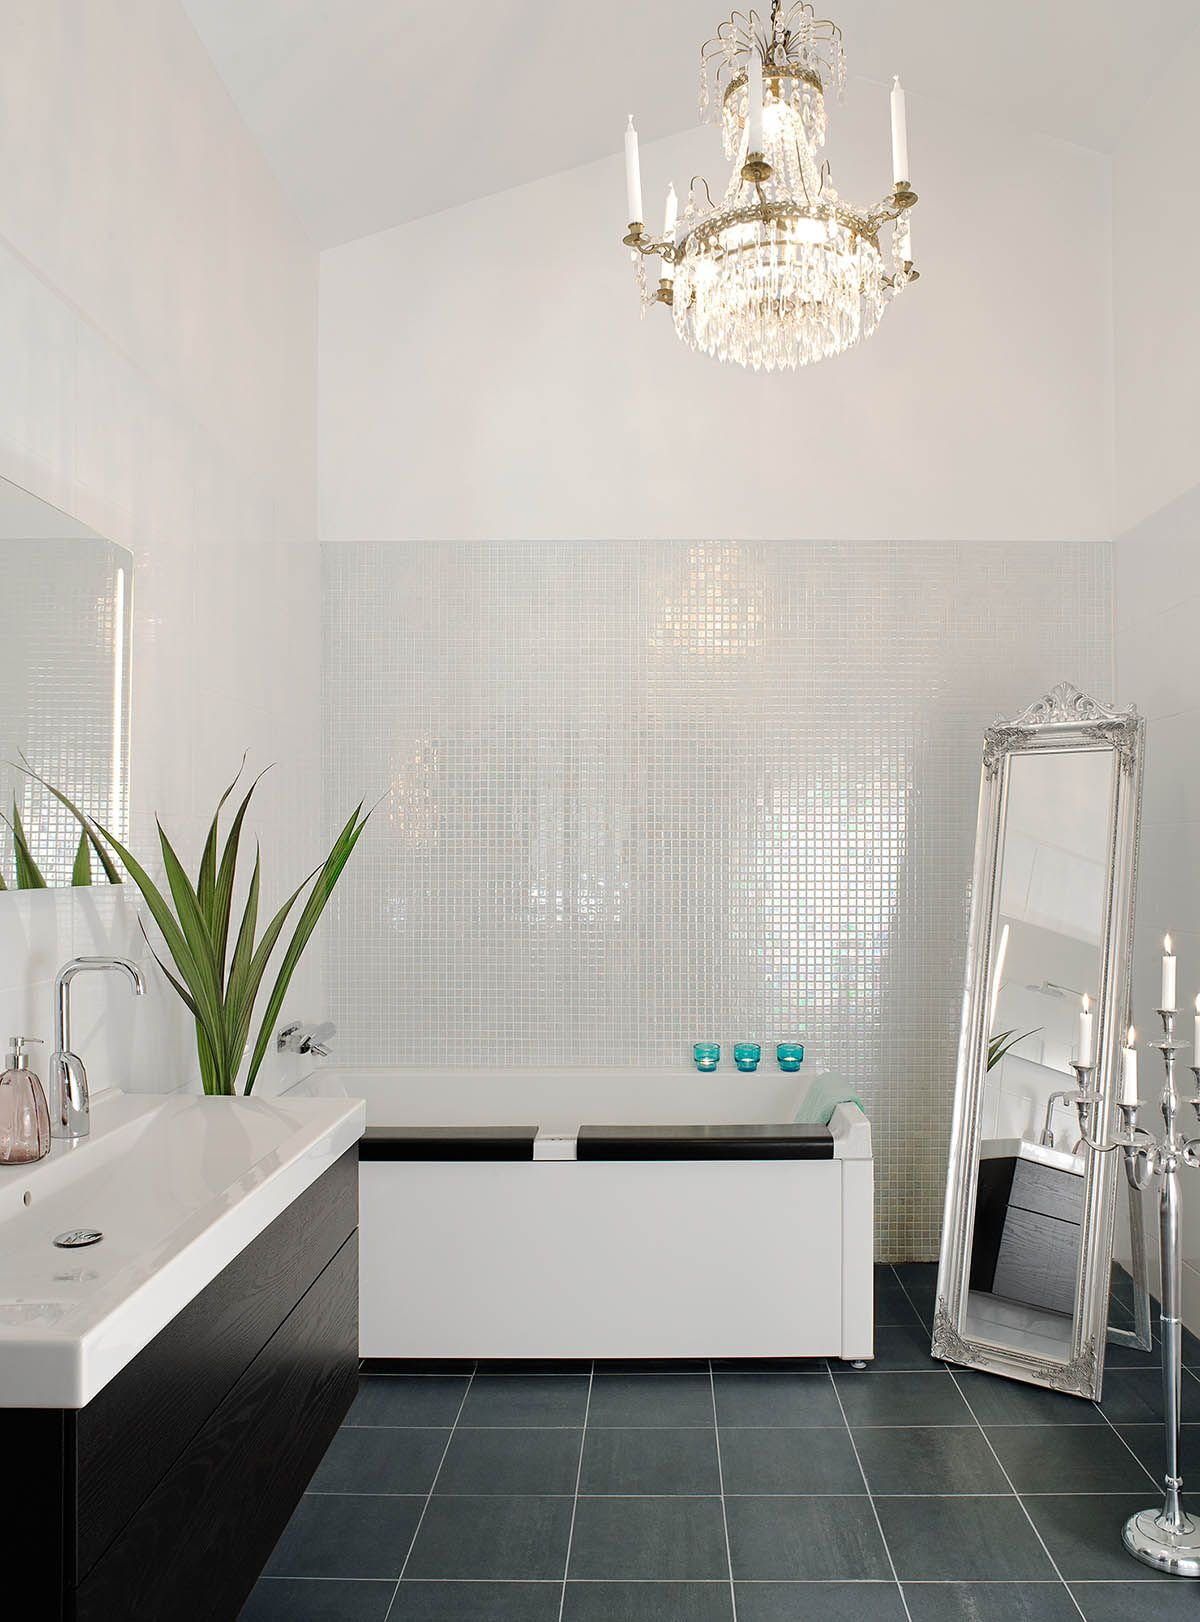 1000 images about mosaique salle de bain on pinterest pearls glass mosaic tiles and jade - Salle De Bain Mosaique Blanche